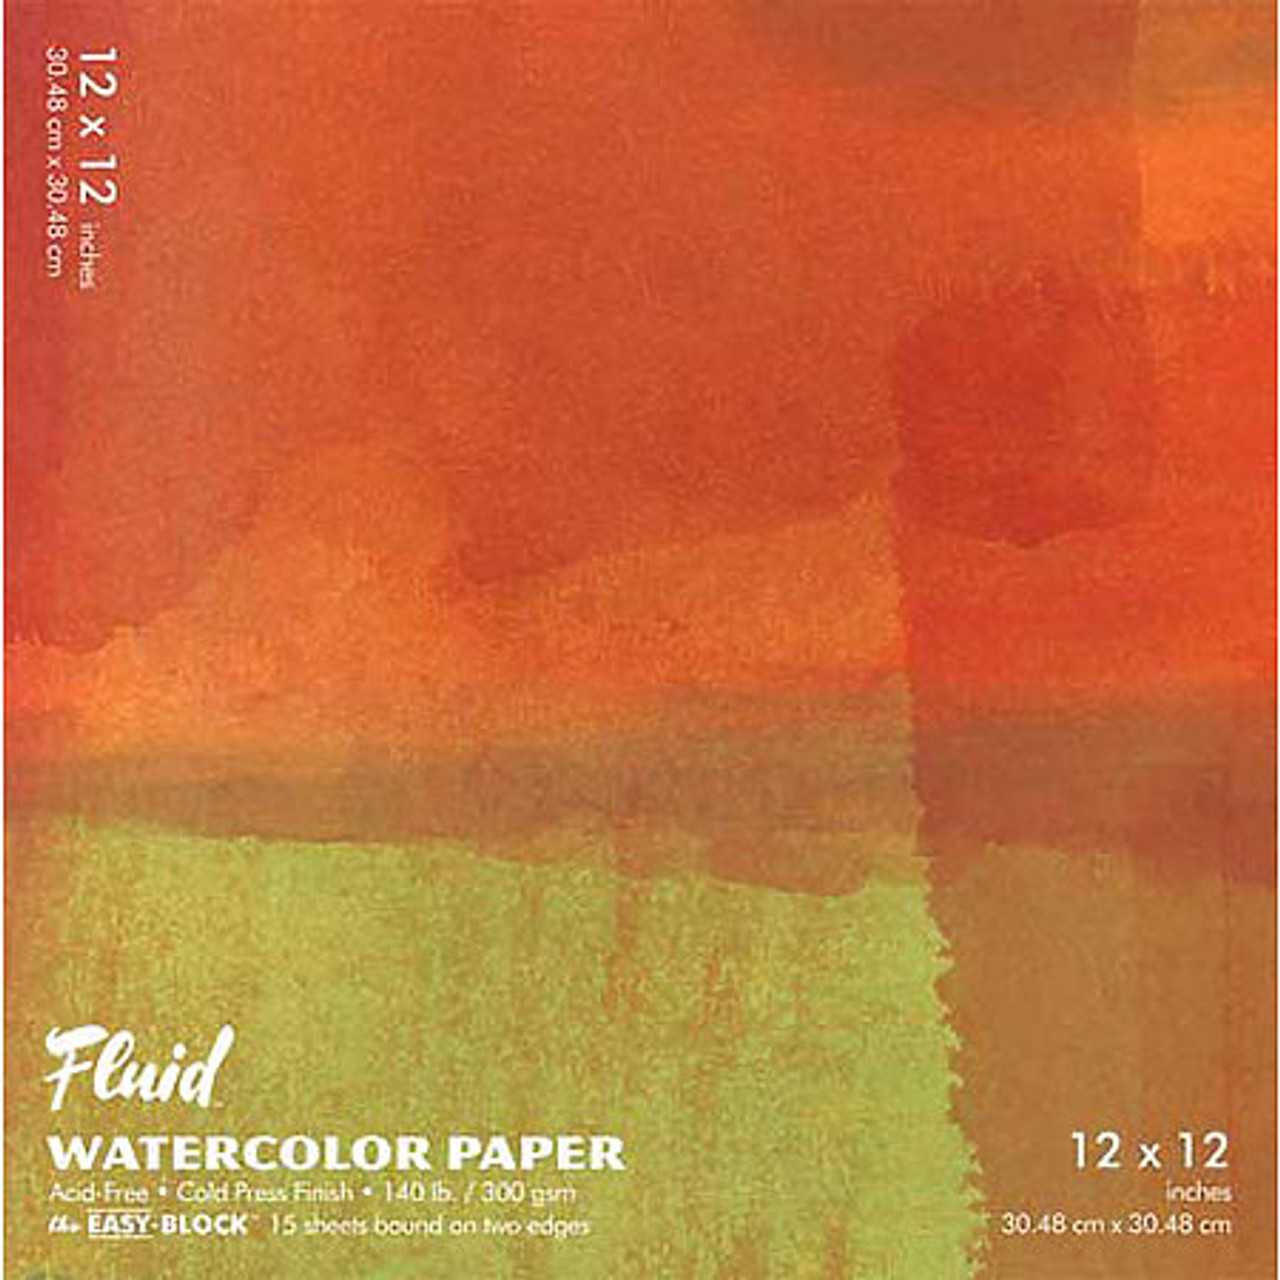 Fluid Watercolor Paper Easy-Blocks